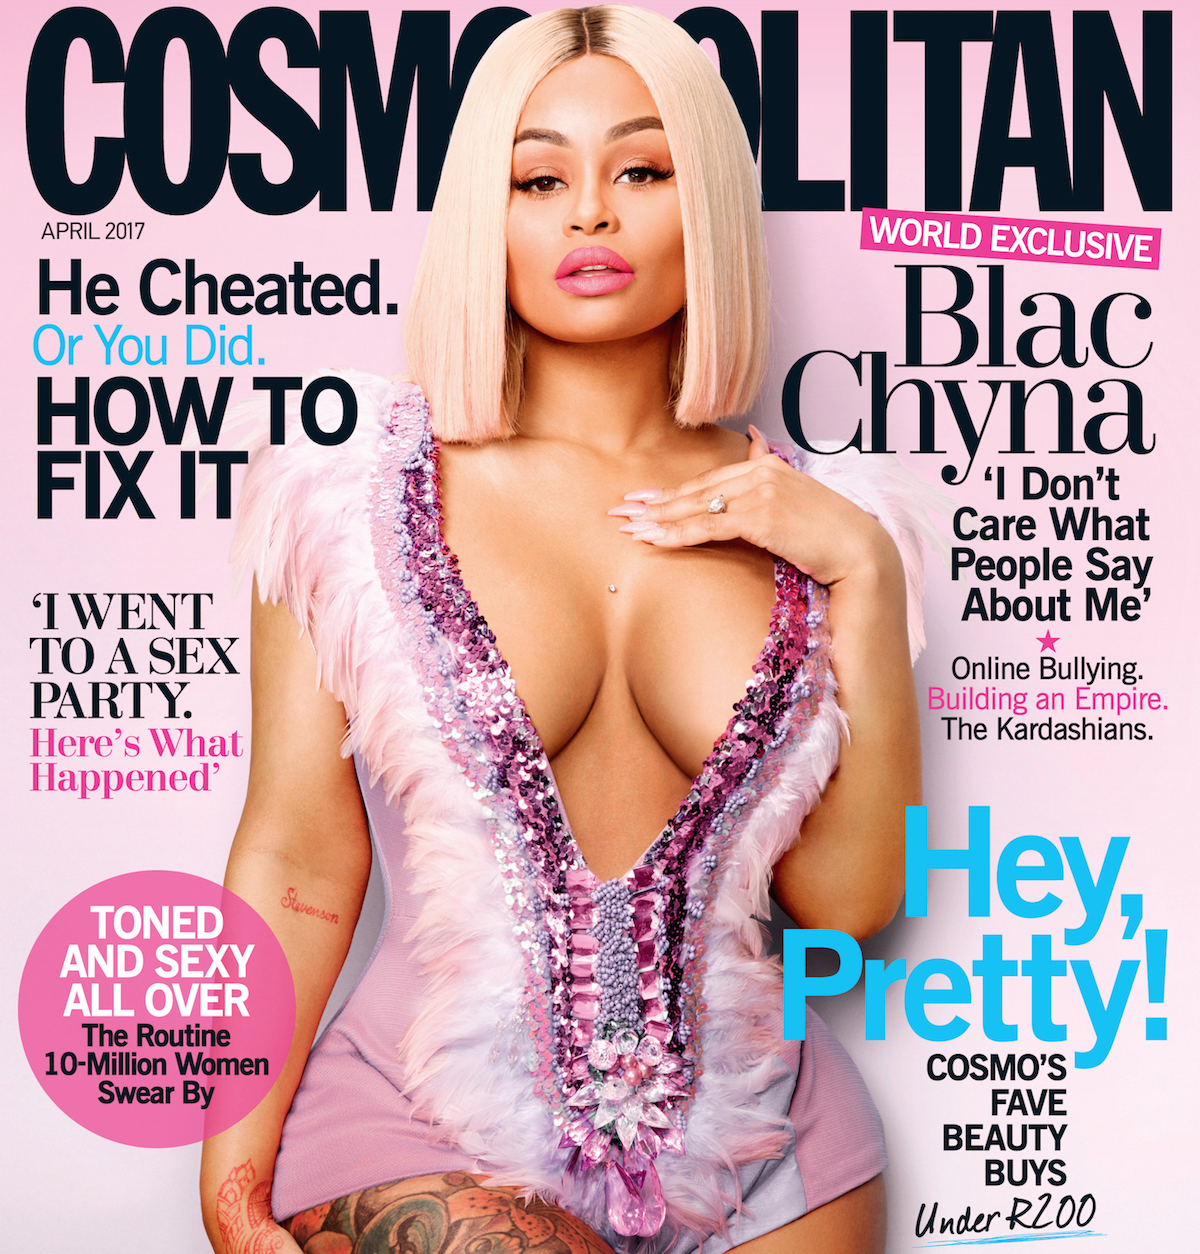 The Celebrity Big Brother producers are eyeing the American model/entrepreneur Blac Chyna